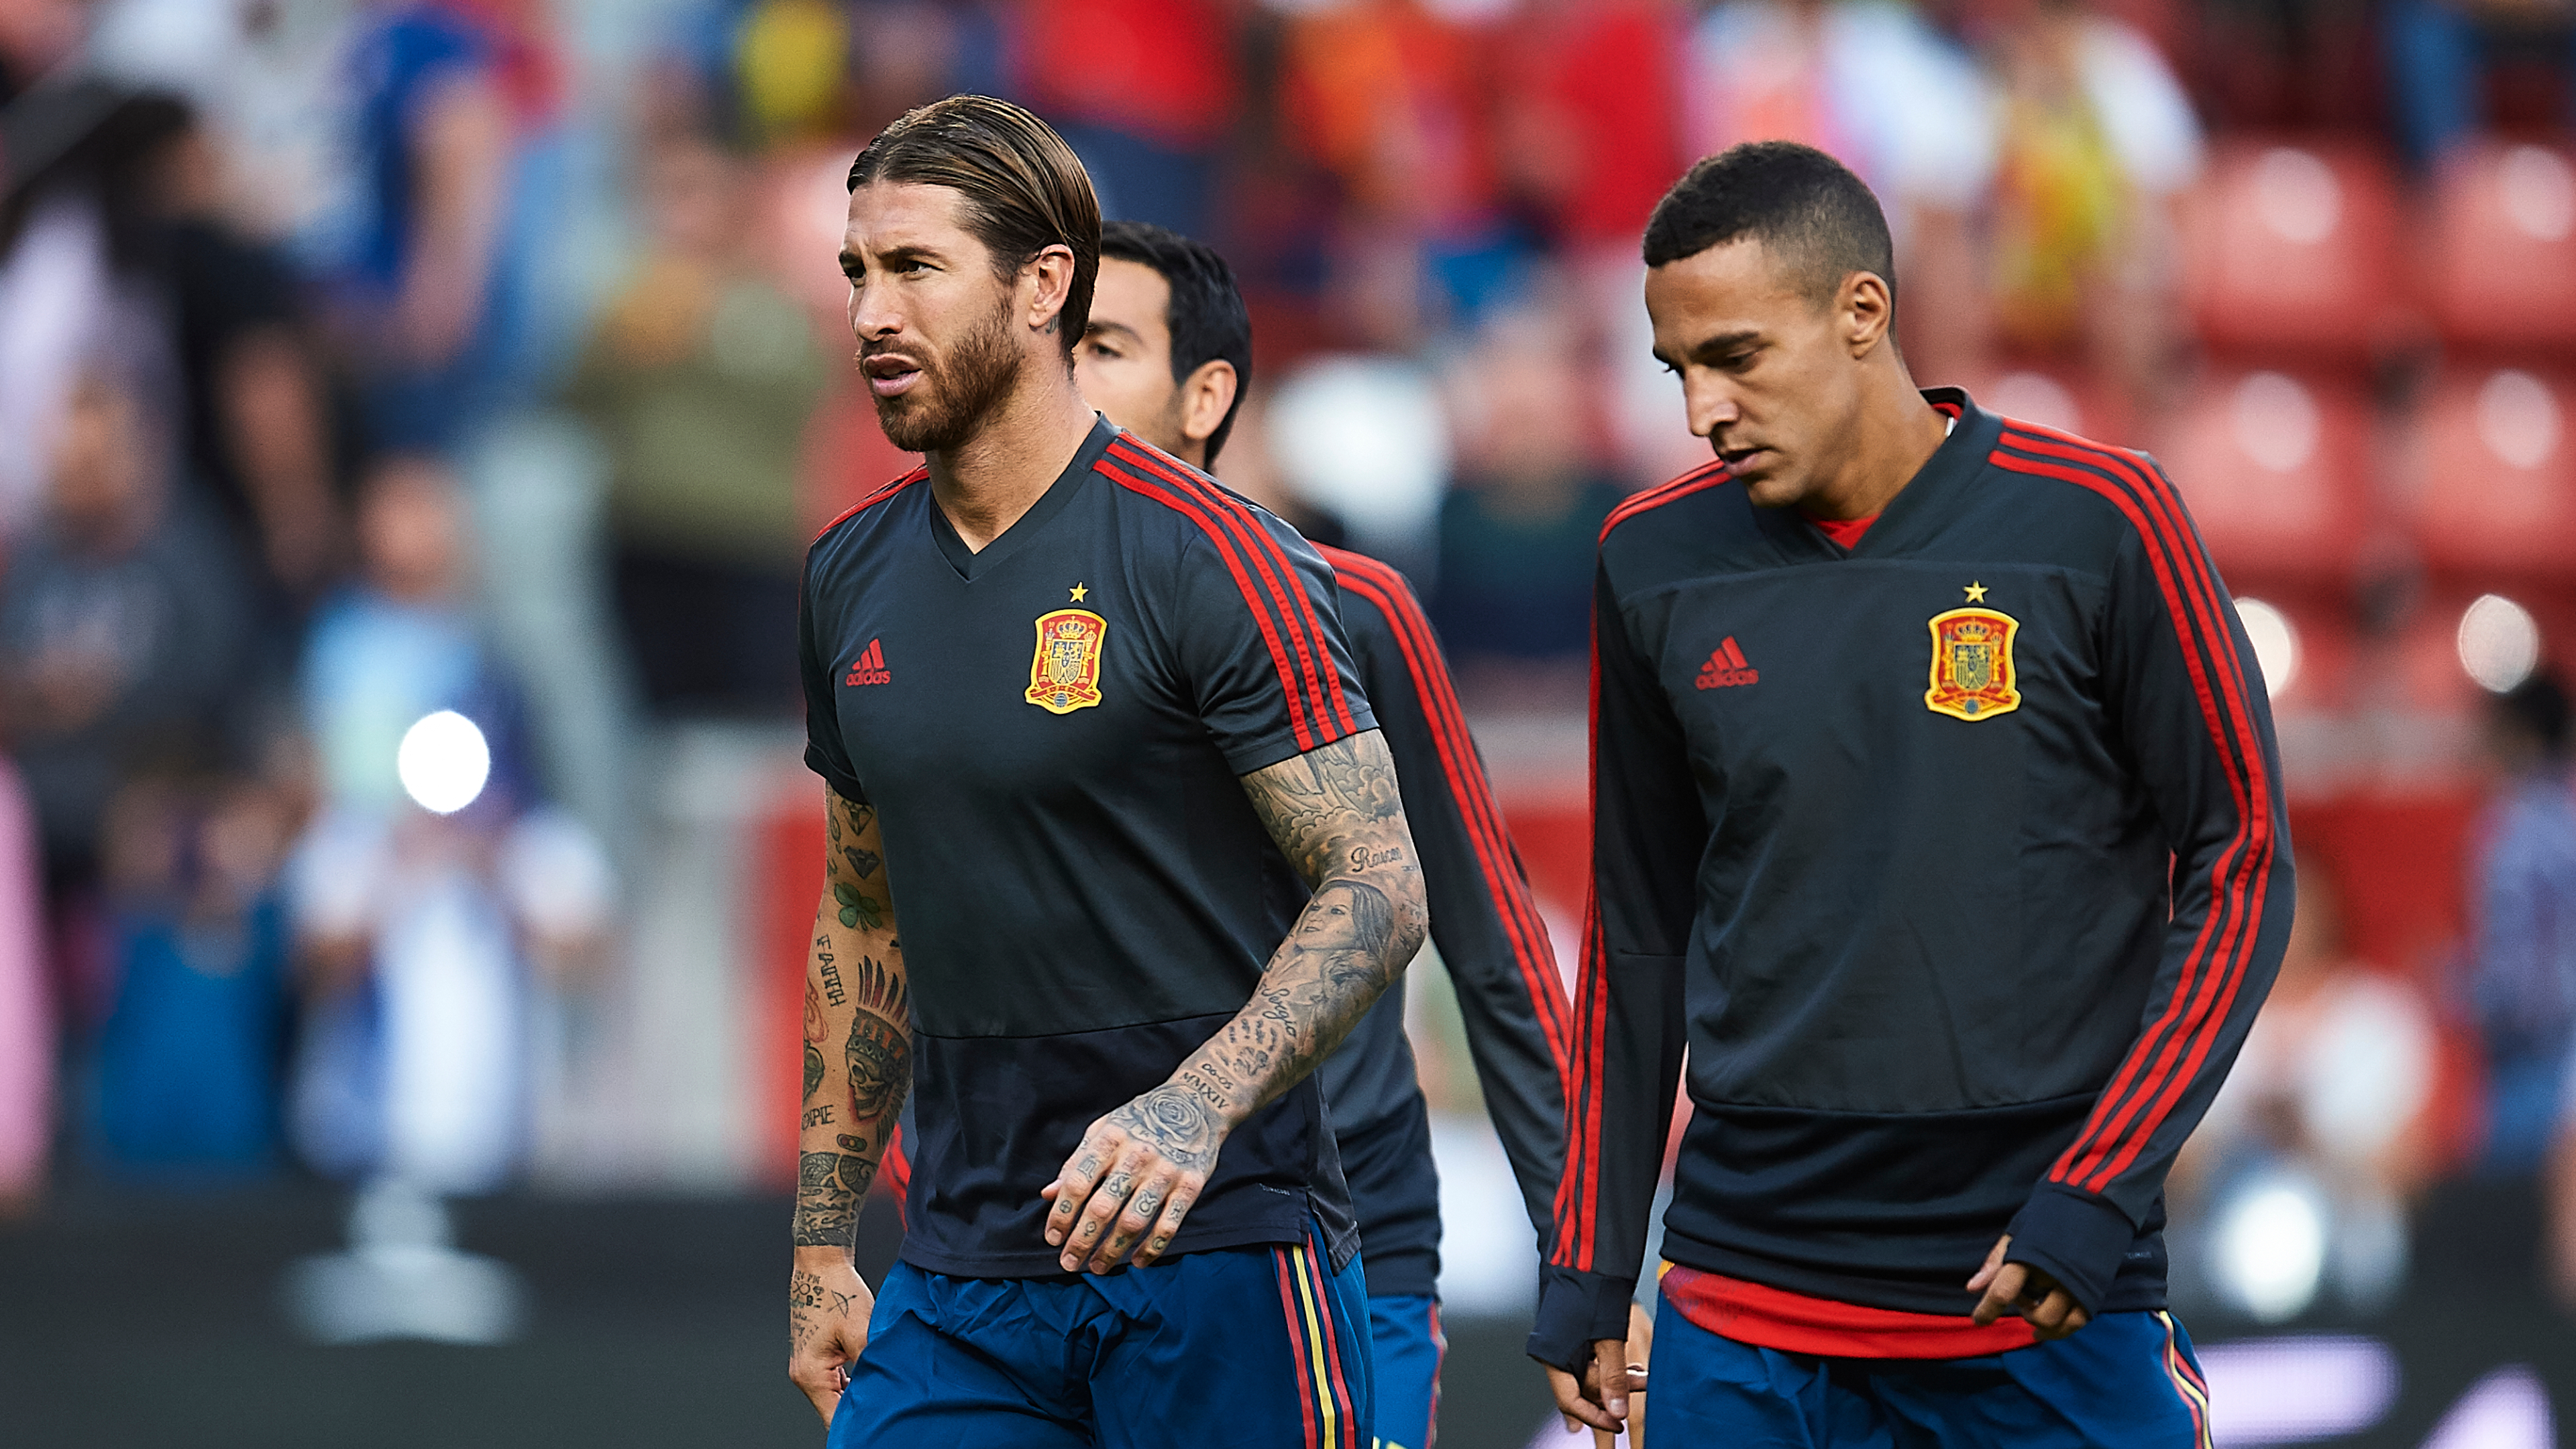 Ramos targets 200 games for Spain after equalling Casillas' record